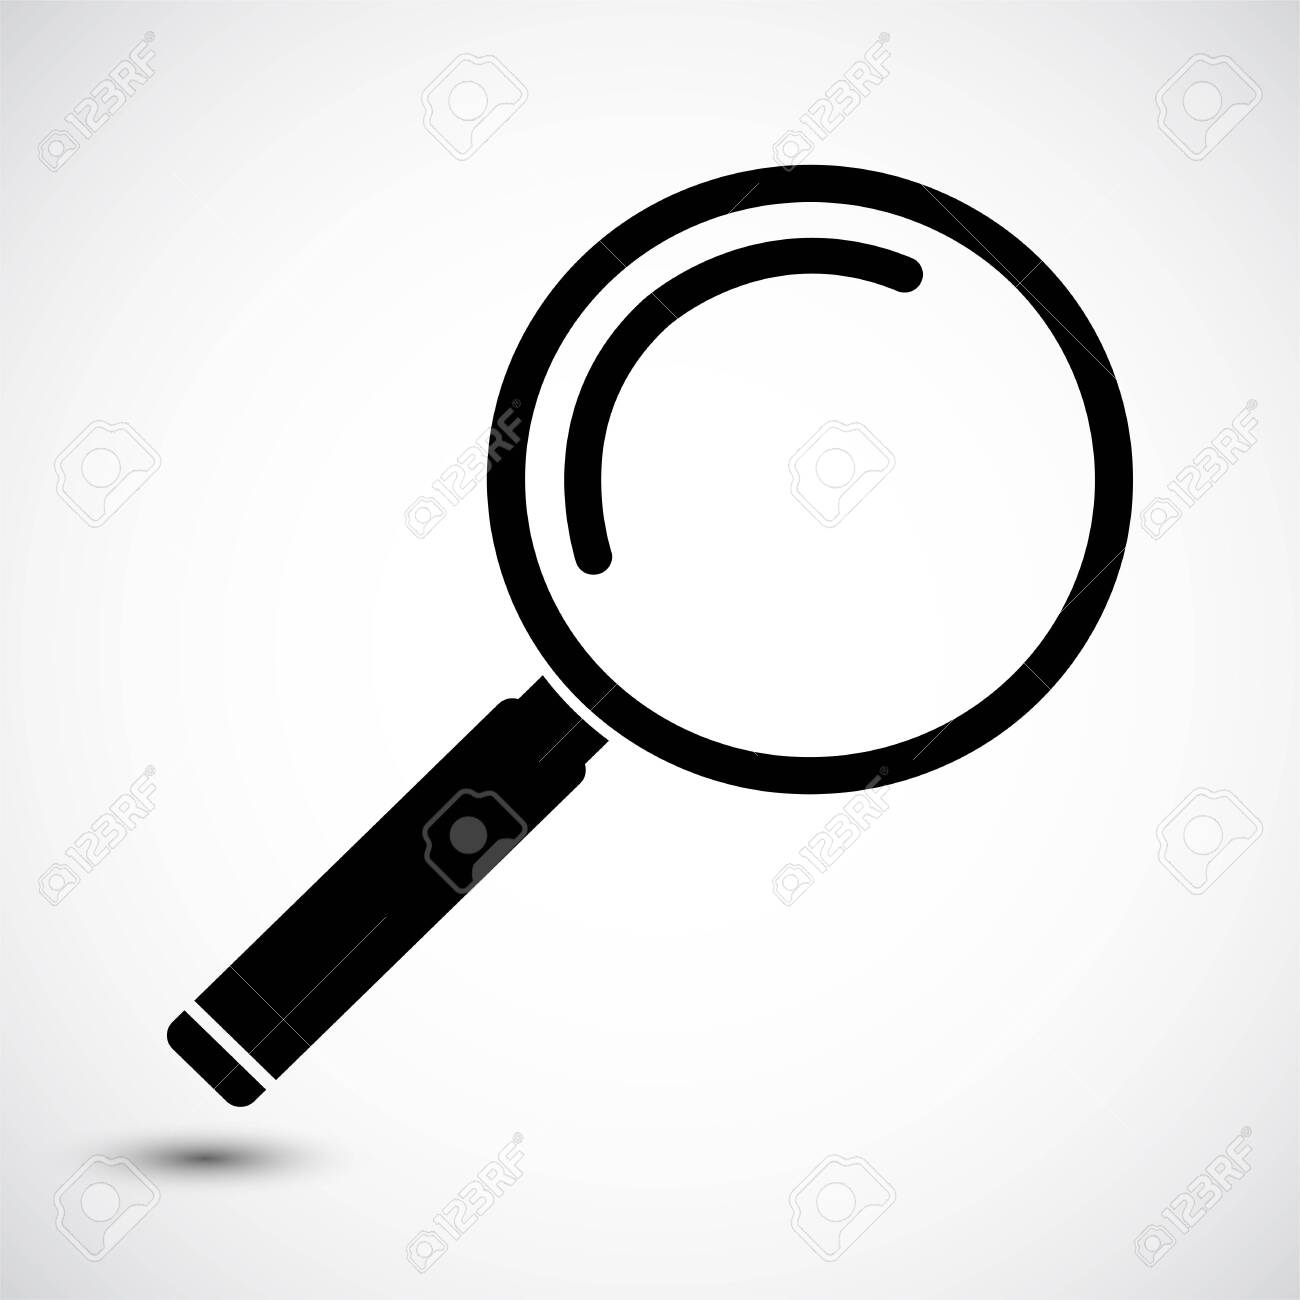 Magnifying Glass Icon on white background - 129945154